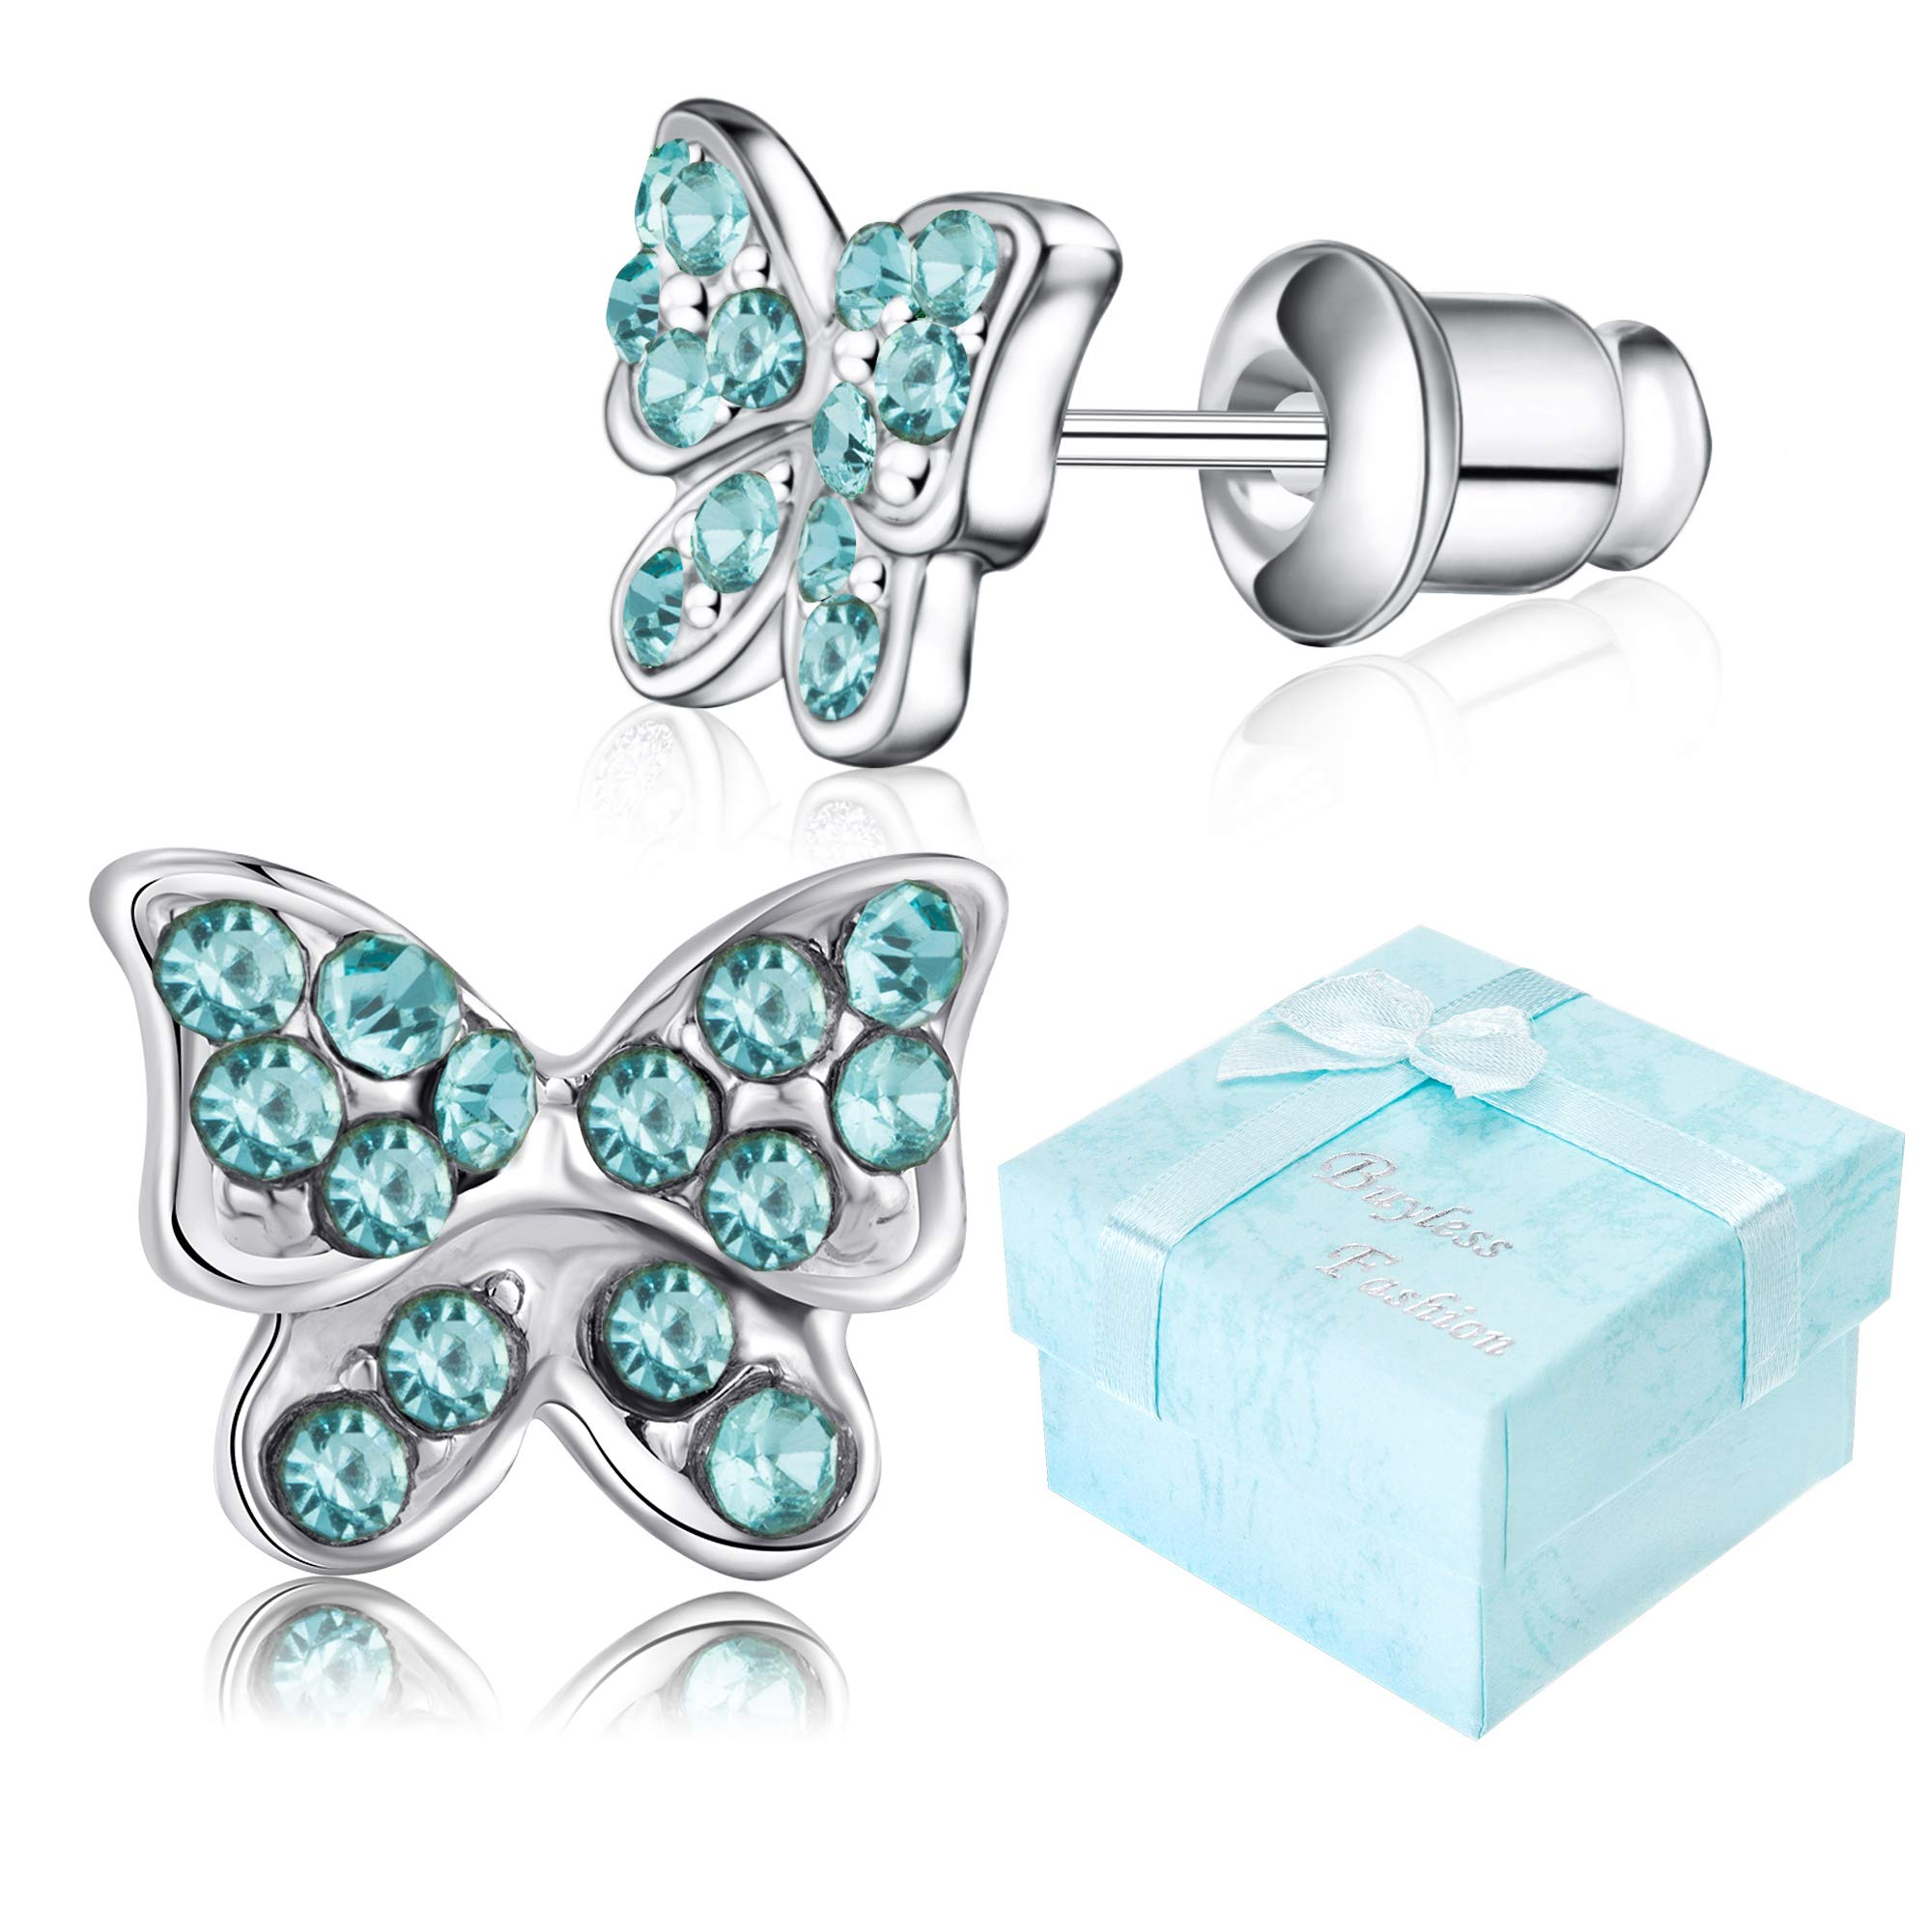 e9357319e Buyless Fashion Girls Butterfly Stud Earrings Silver Surgical Stainless  Steel product image